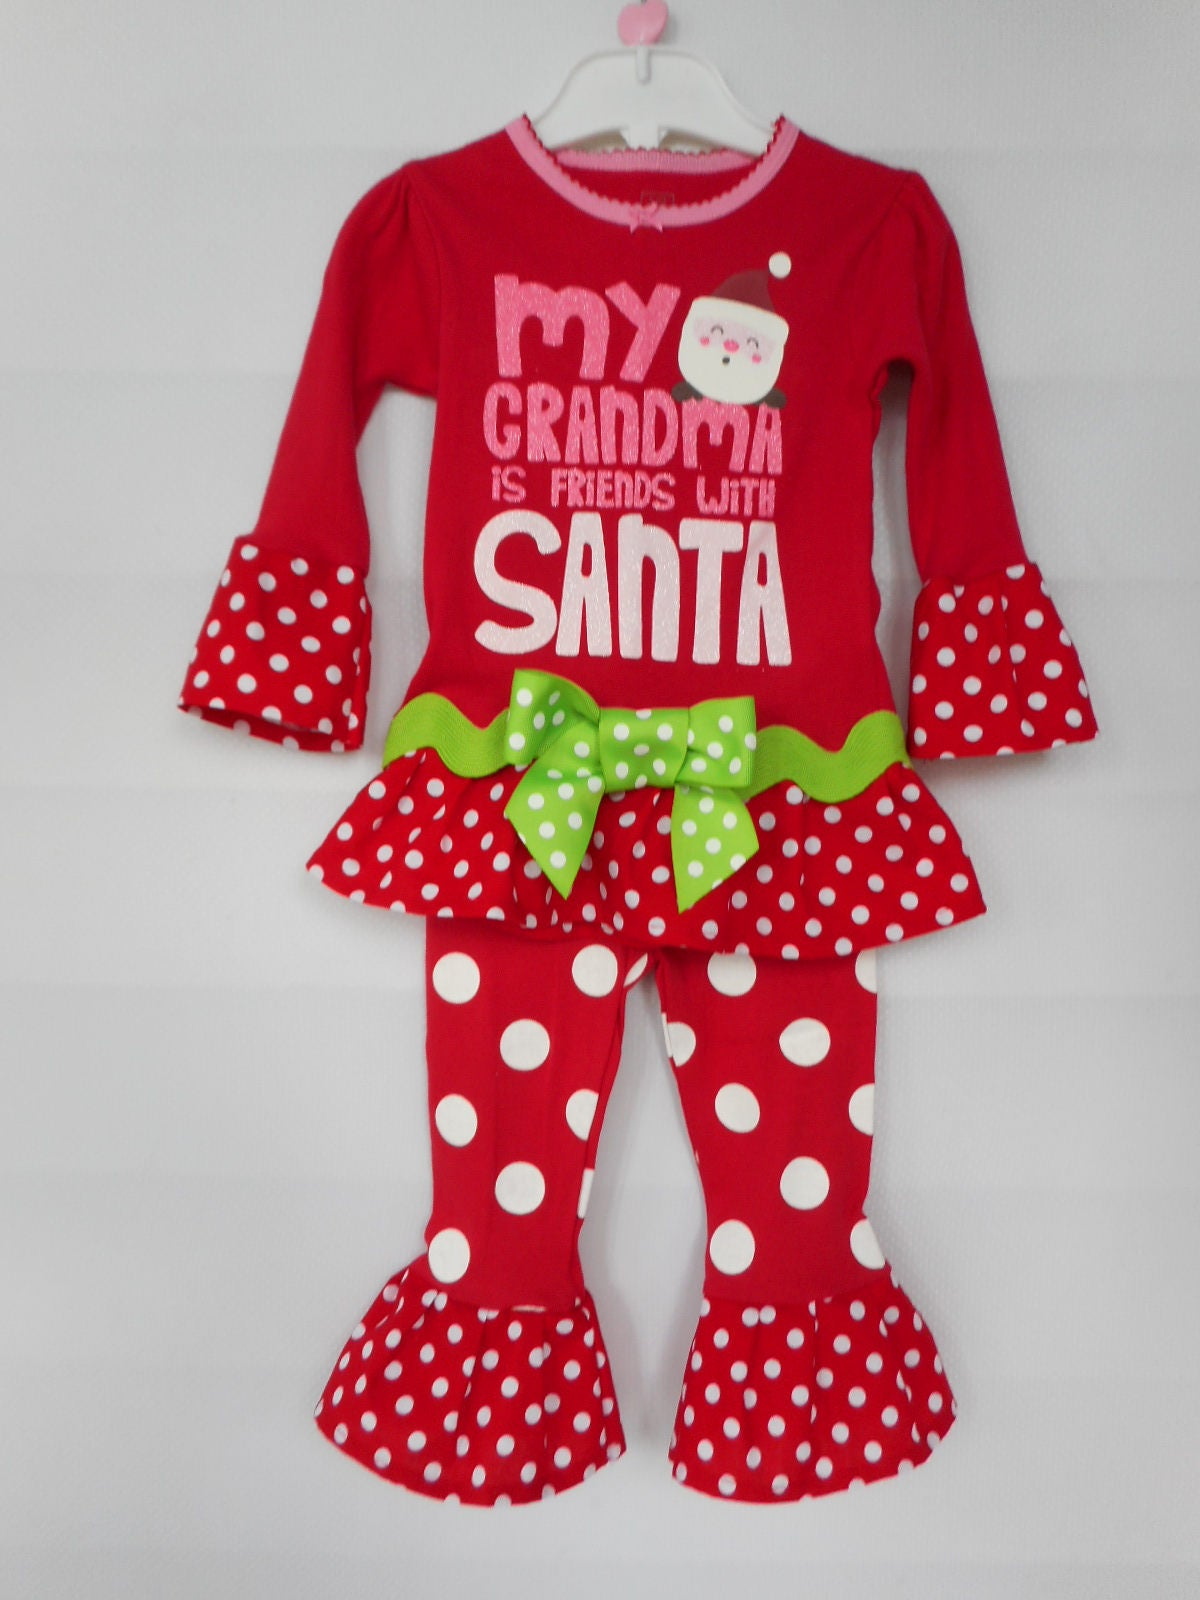 39c9e36681c8 Toddler Girls Christmas Pajamas Ruffle Pajamas Grandma Knows Santa Pajamas  Carters Pajama Set